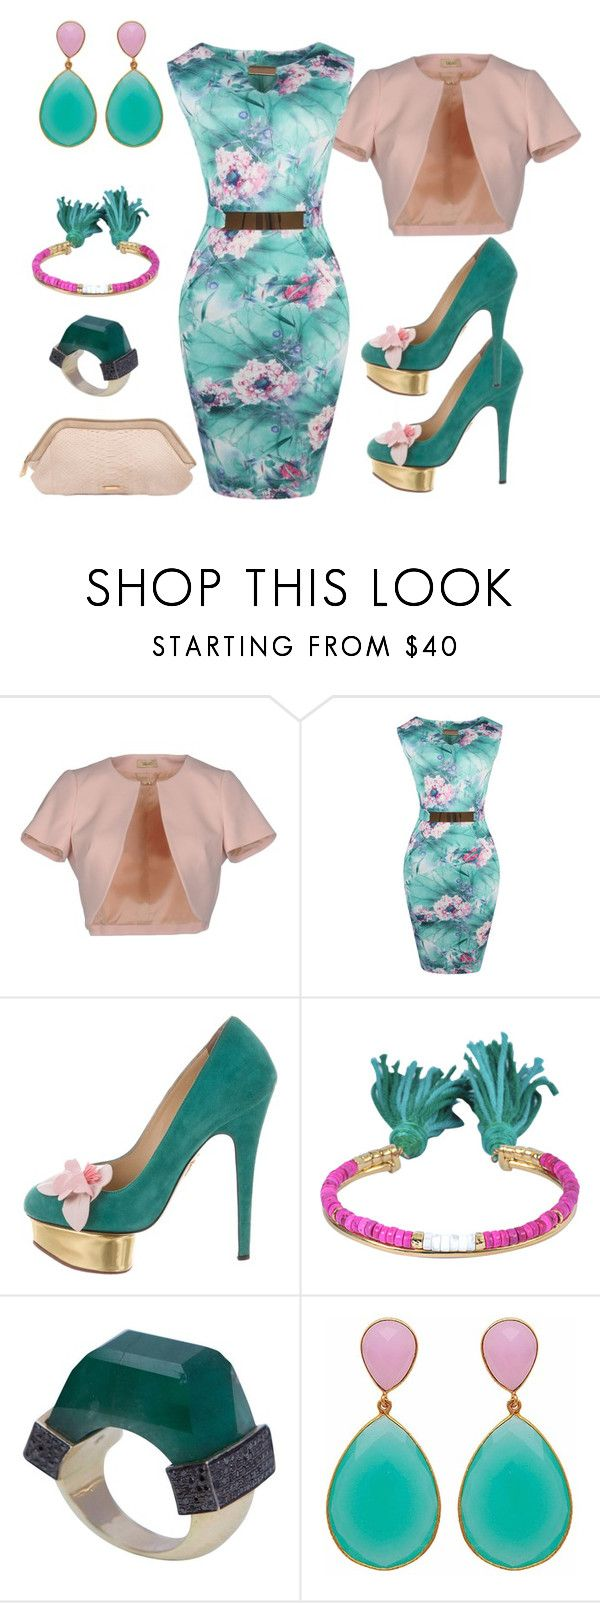 """""""Untitled #2402"""" by deirdre35 on Polyvore featuring LIU•JO, WithChic, Charlotte Olympia, Aurélie Bidermann, Jade Jagger, Carousel Jewels and Burberry"""